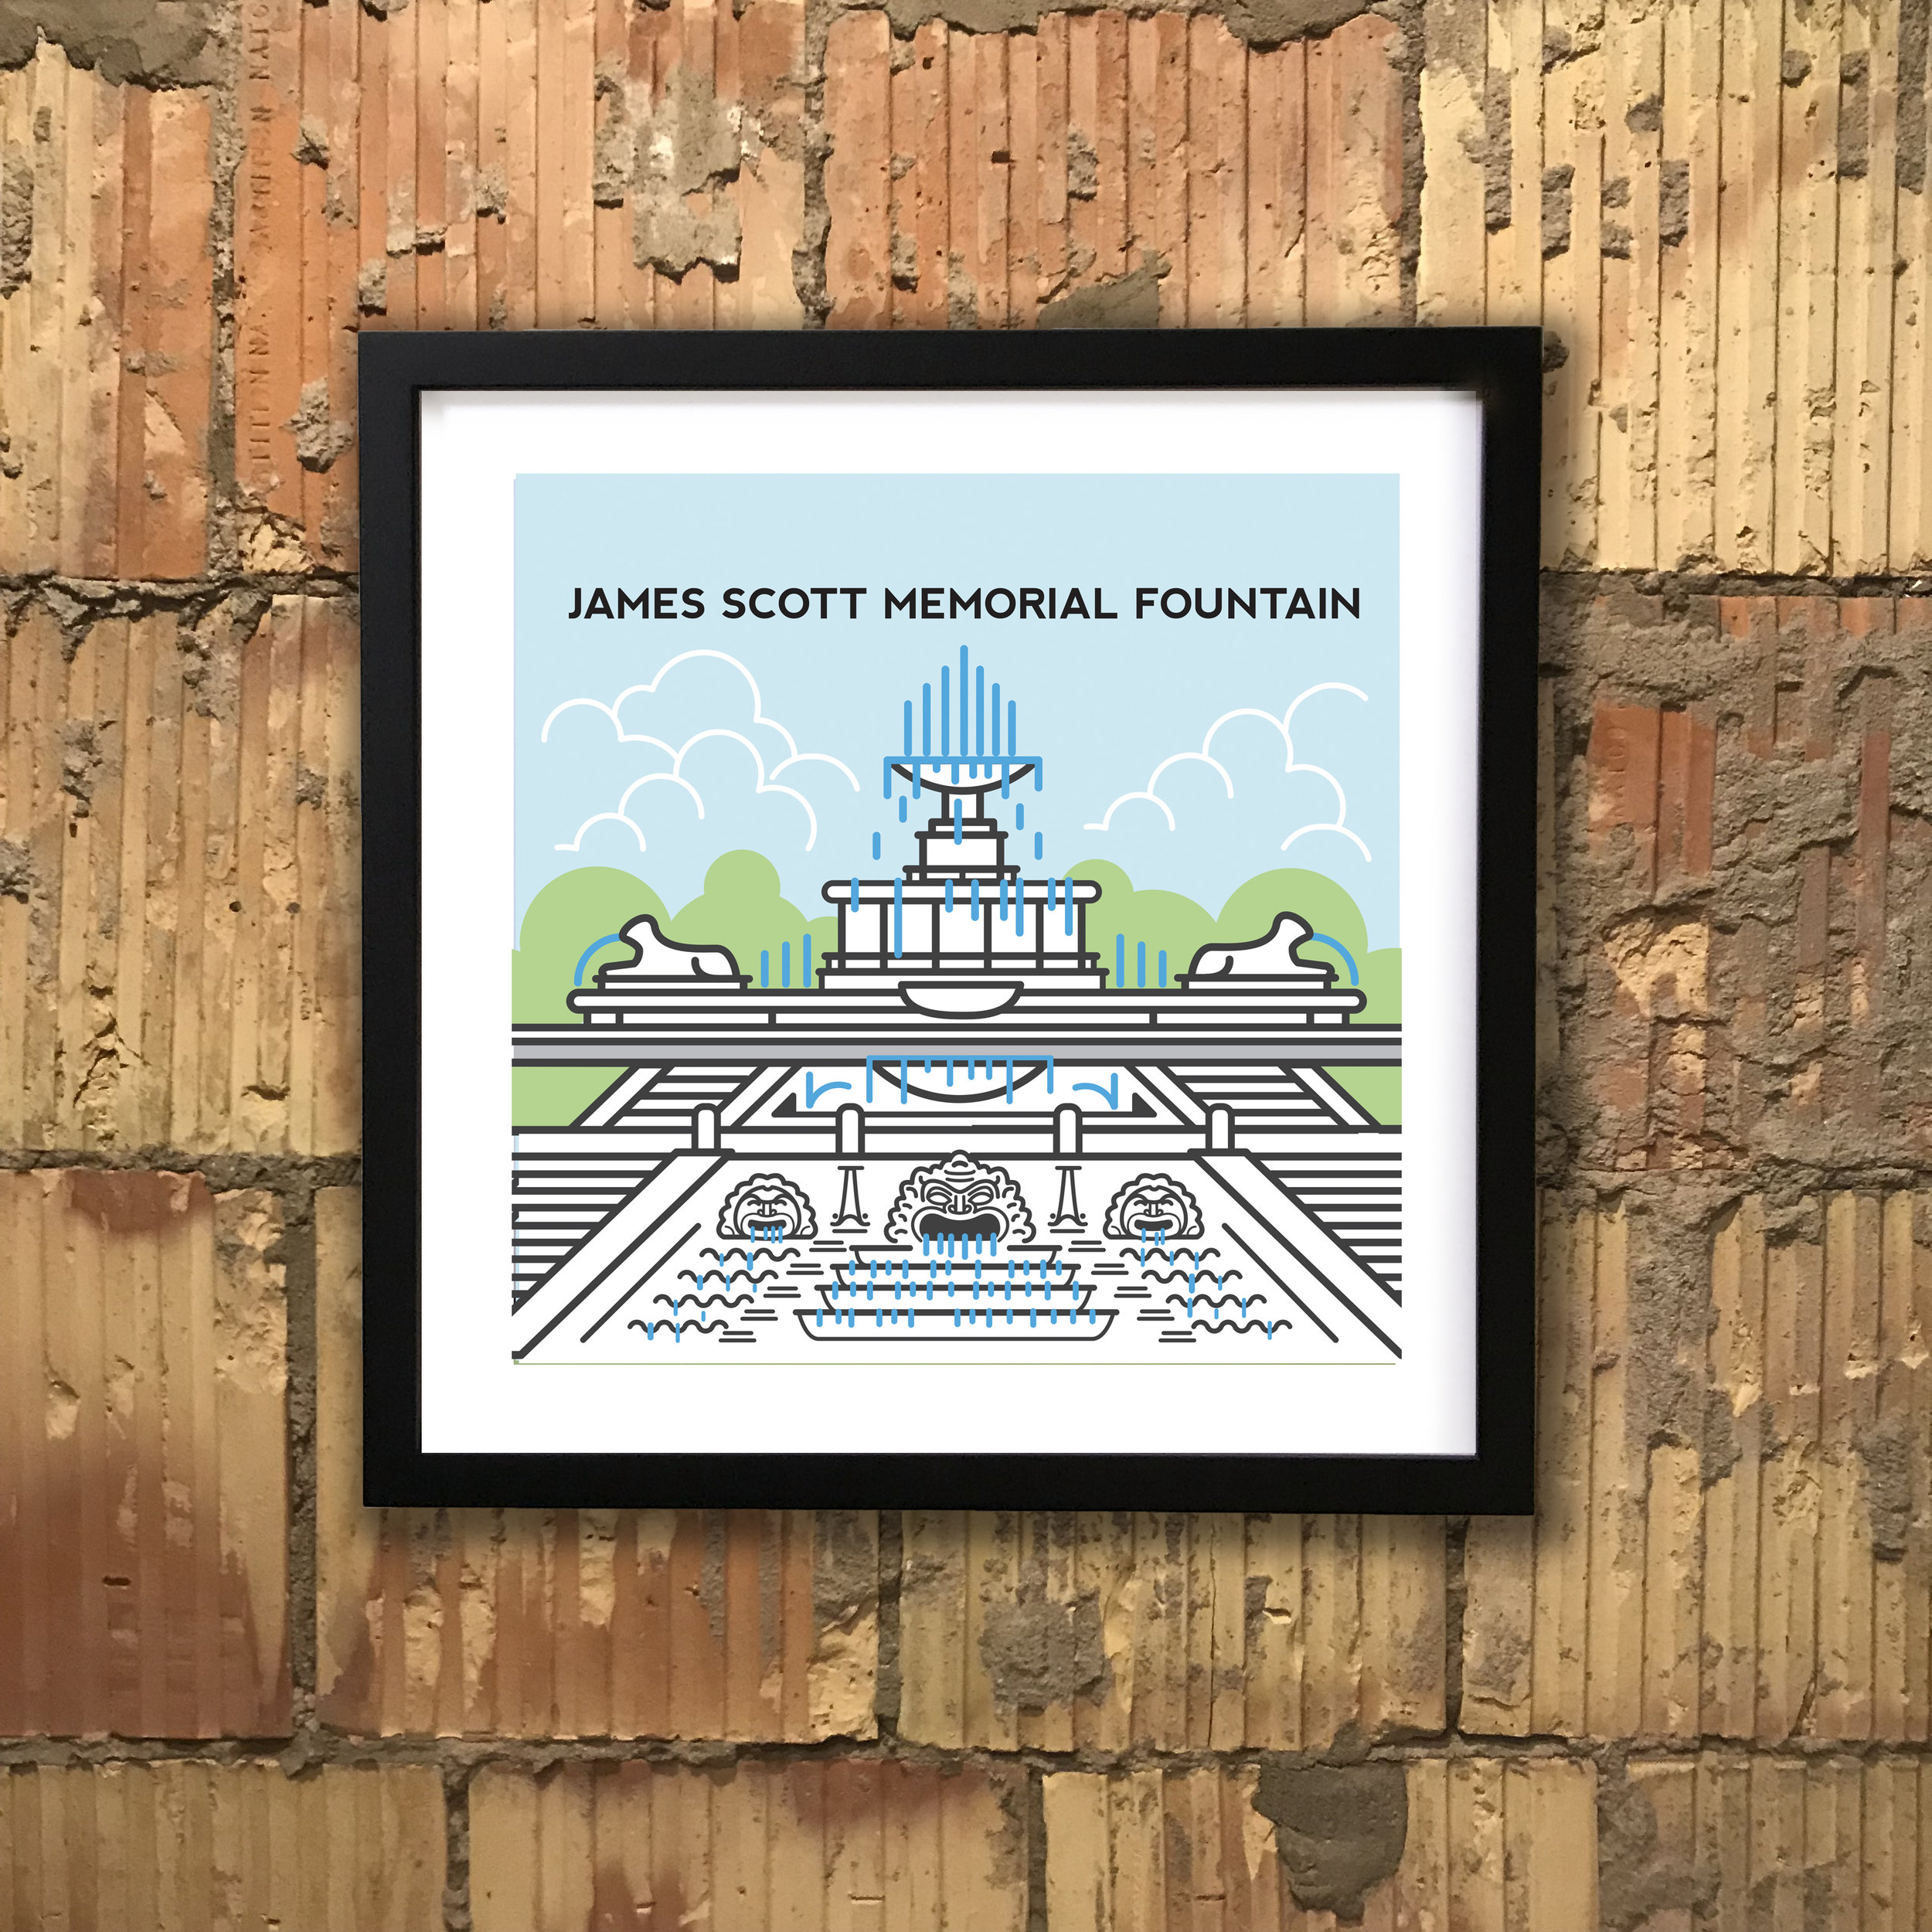 Introducing GT Home - Framed prints.